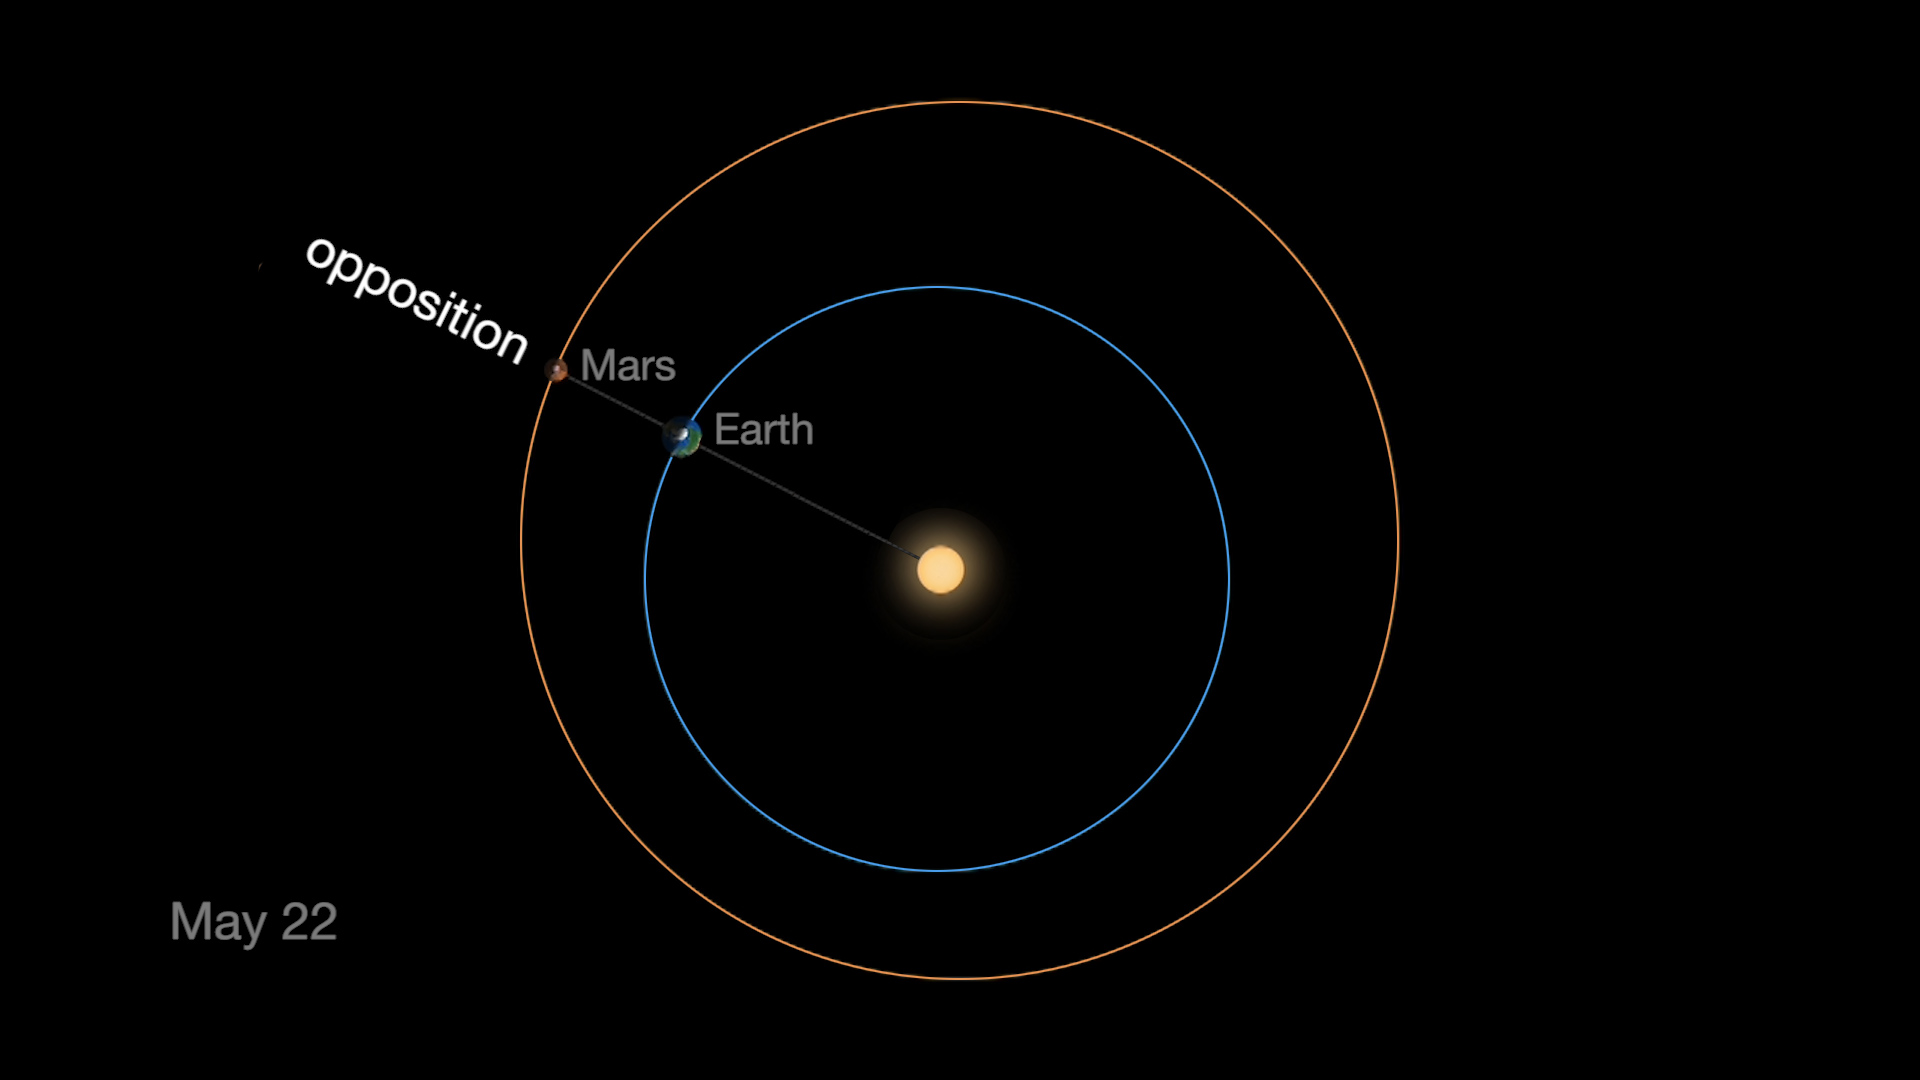 moon location during mars opposition - photo #47